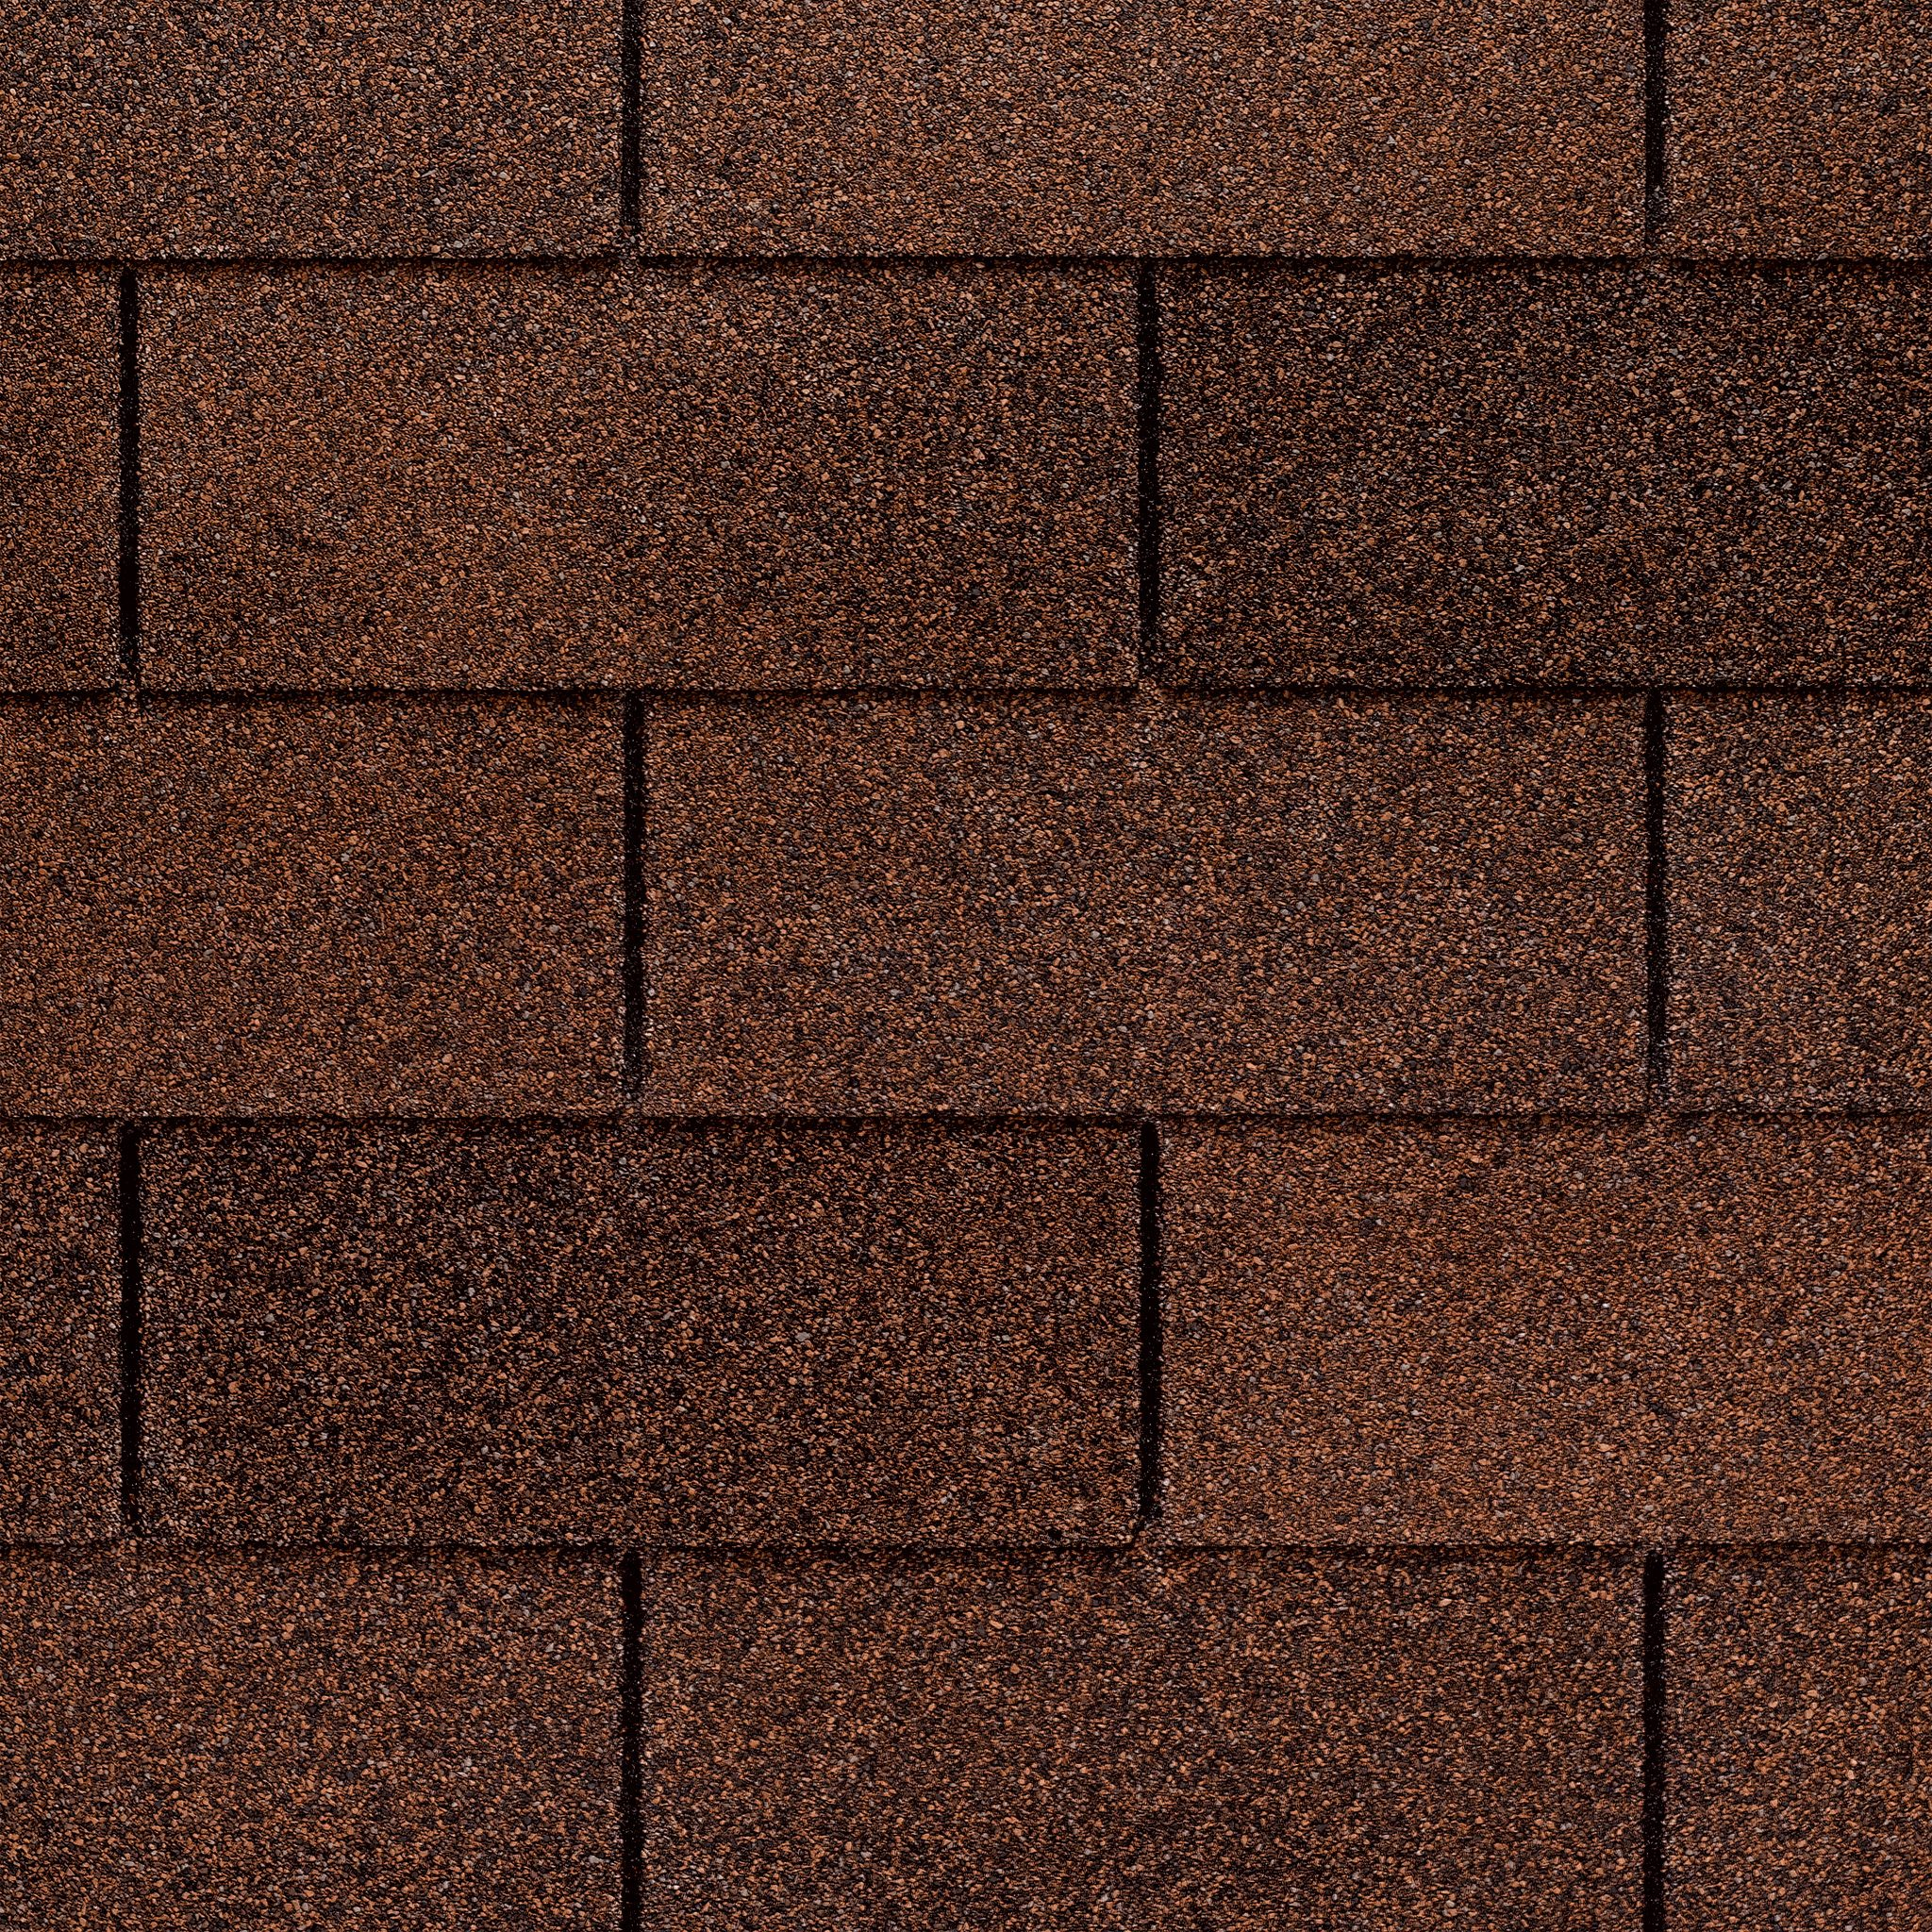 Close up photo of GAF's Marquis WeatherMax Autumn Brown shingle swatch